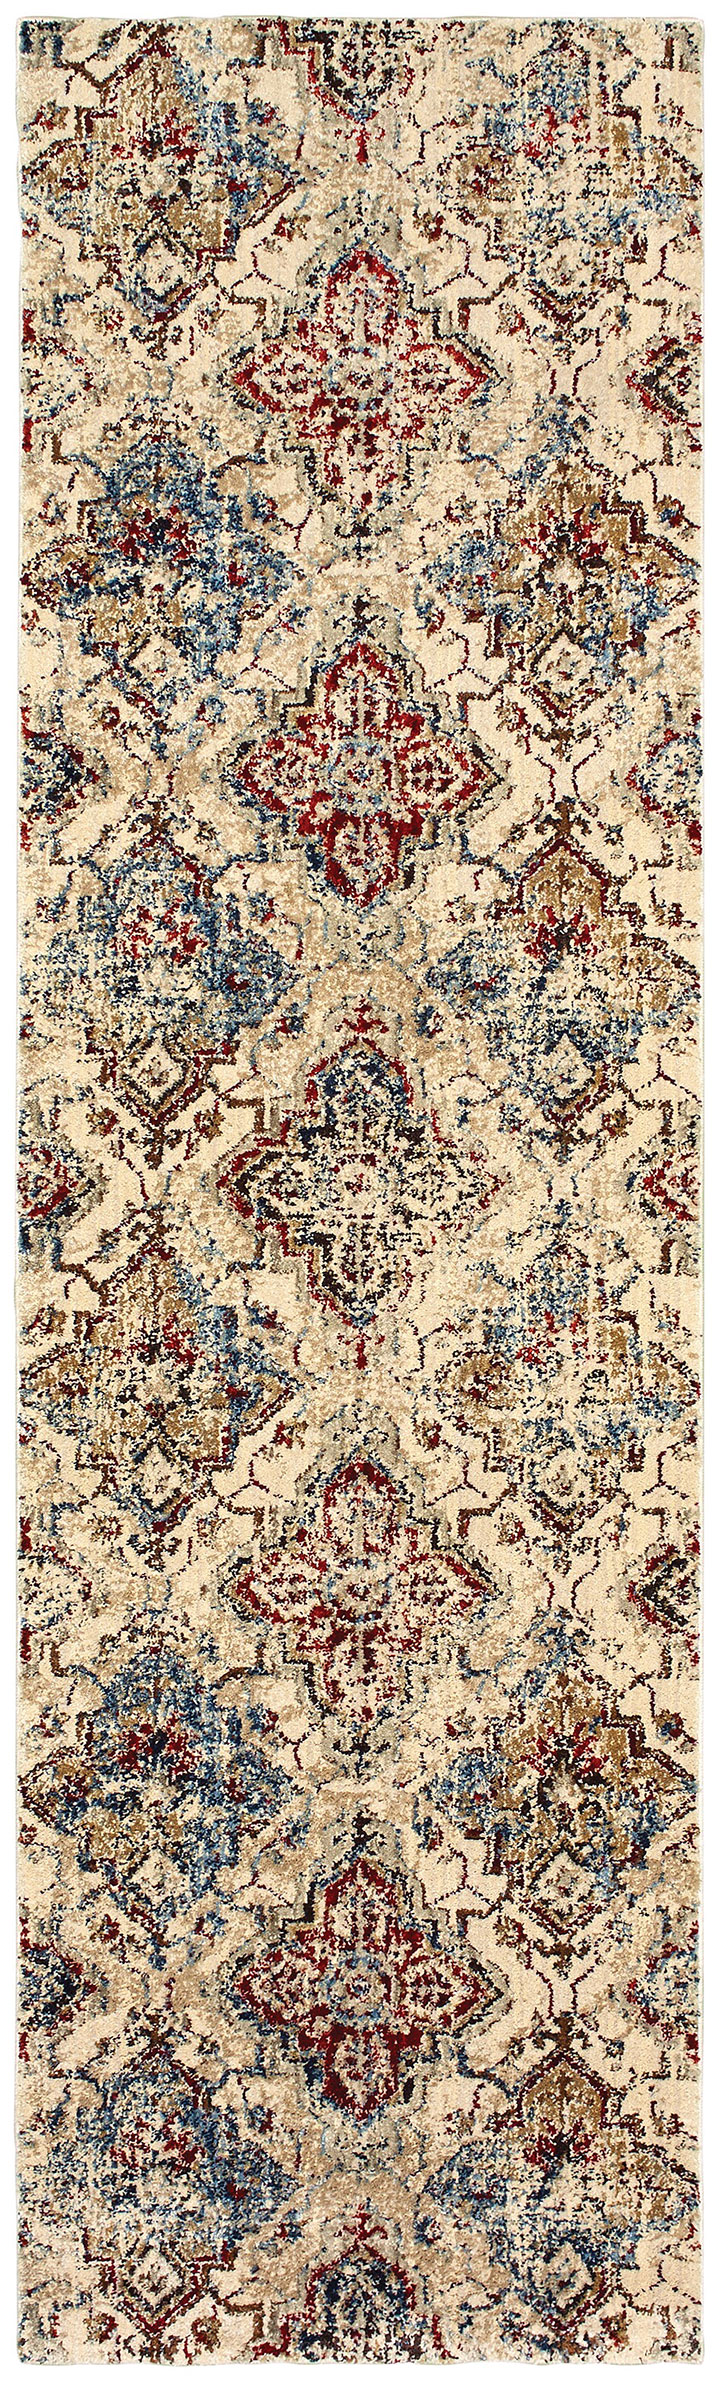 Oriental Weavers Empire 30j Area Rug Carpetmart Com